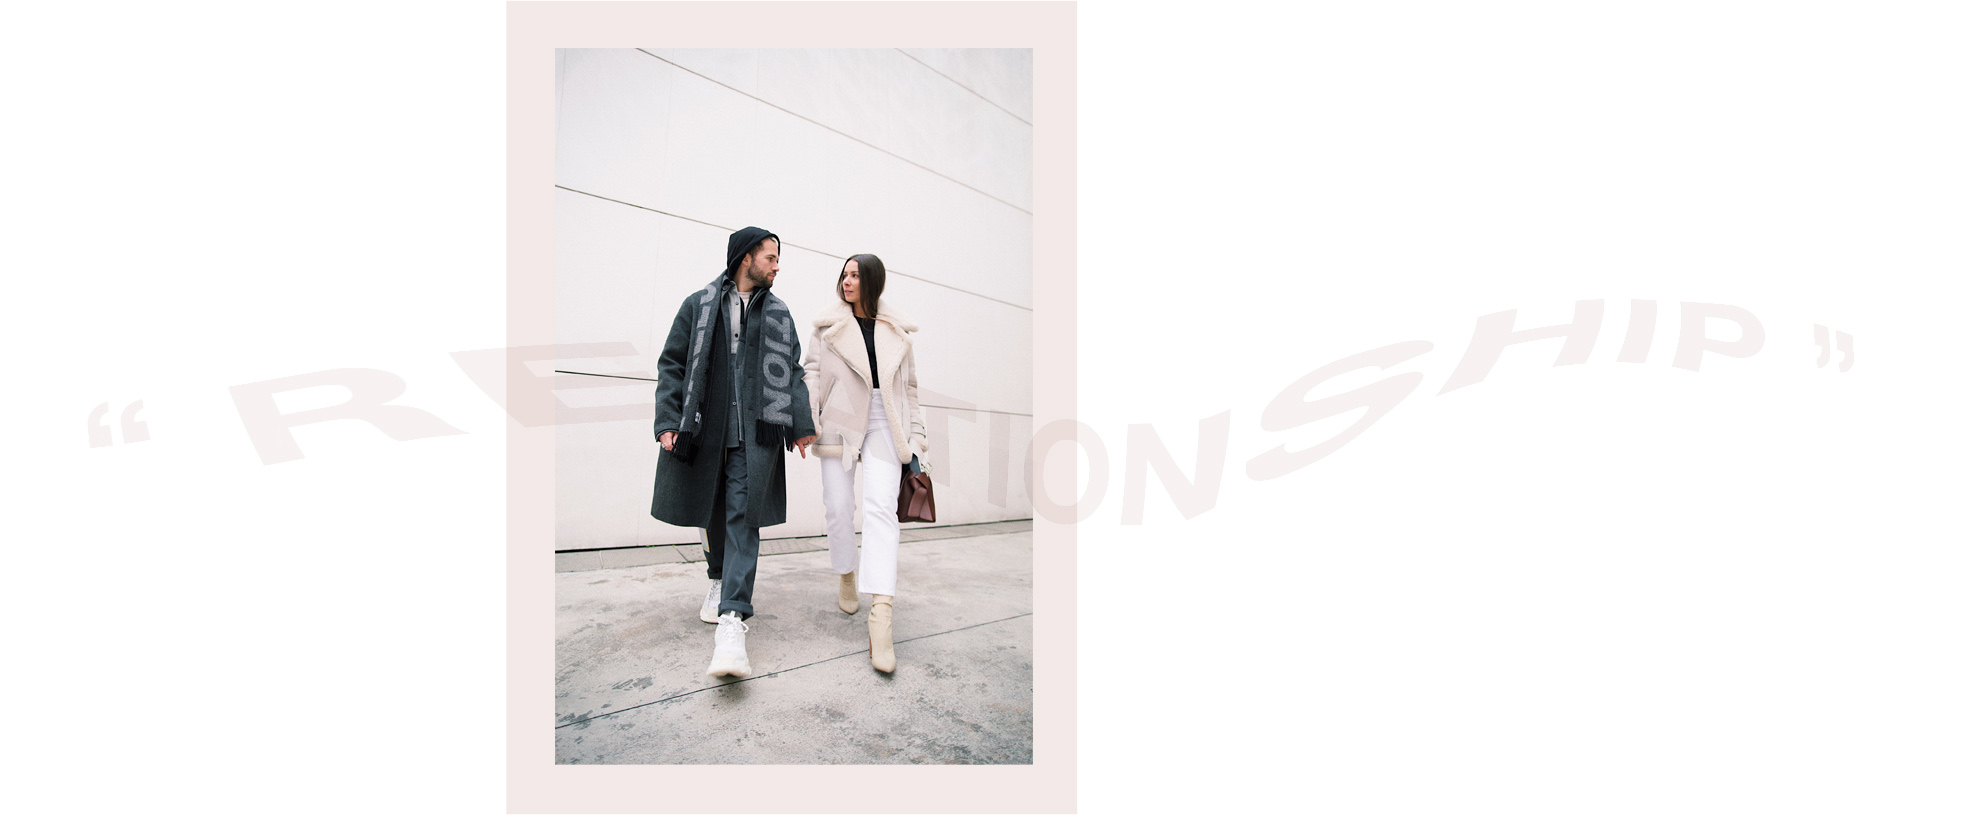 fashion bloggers couple relationship goal mode